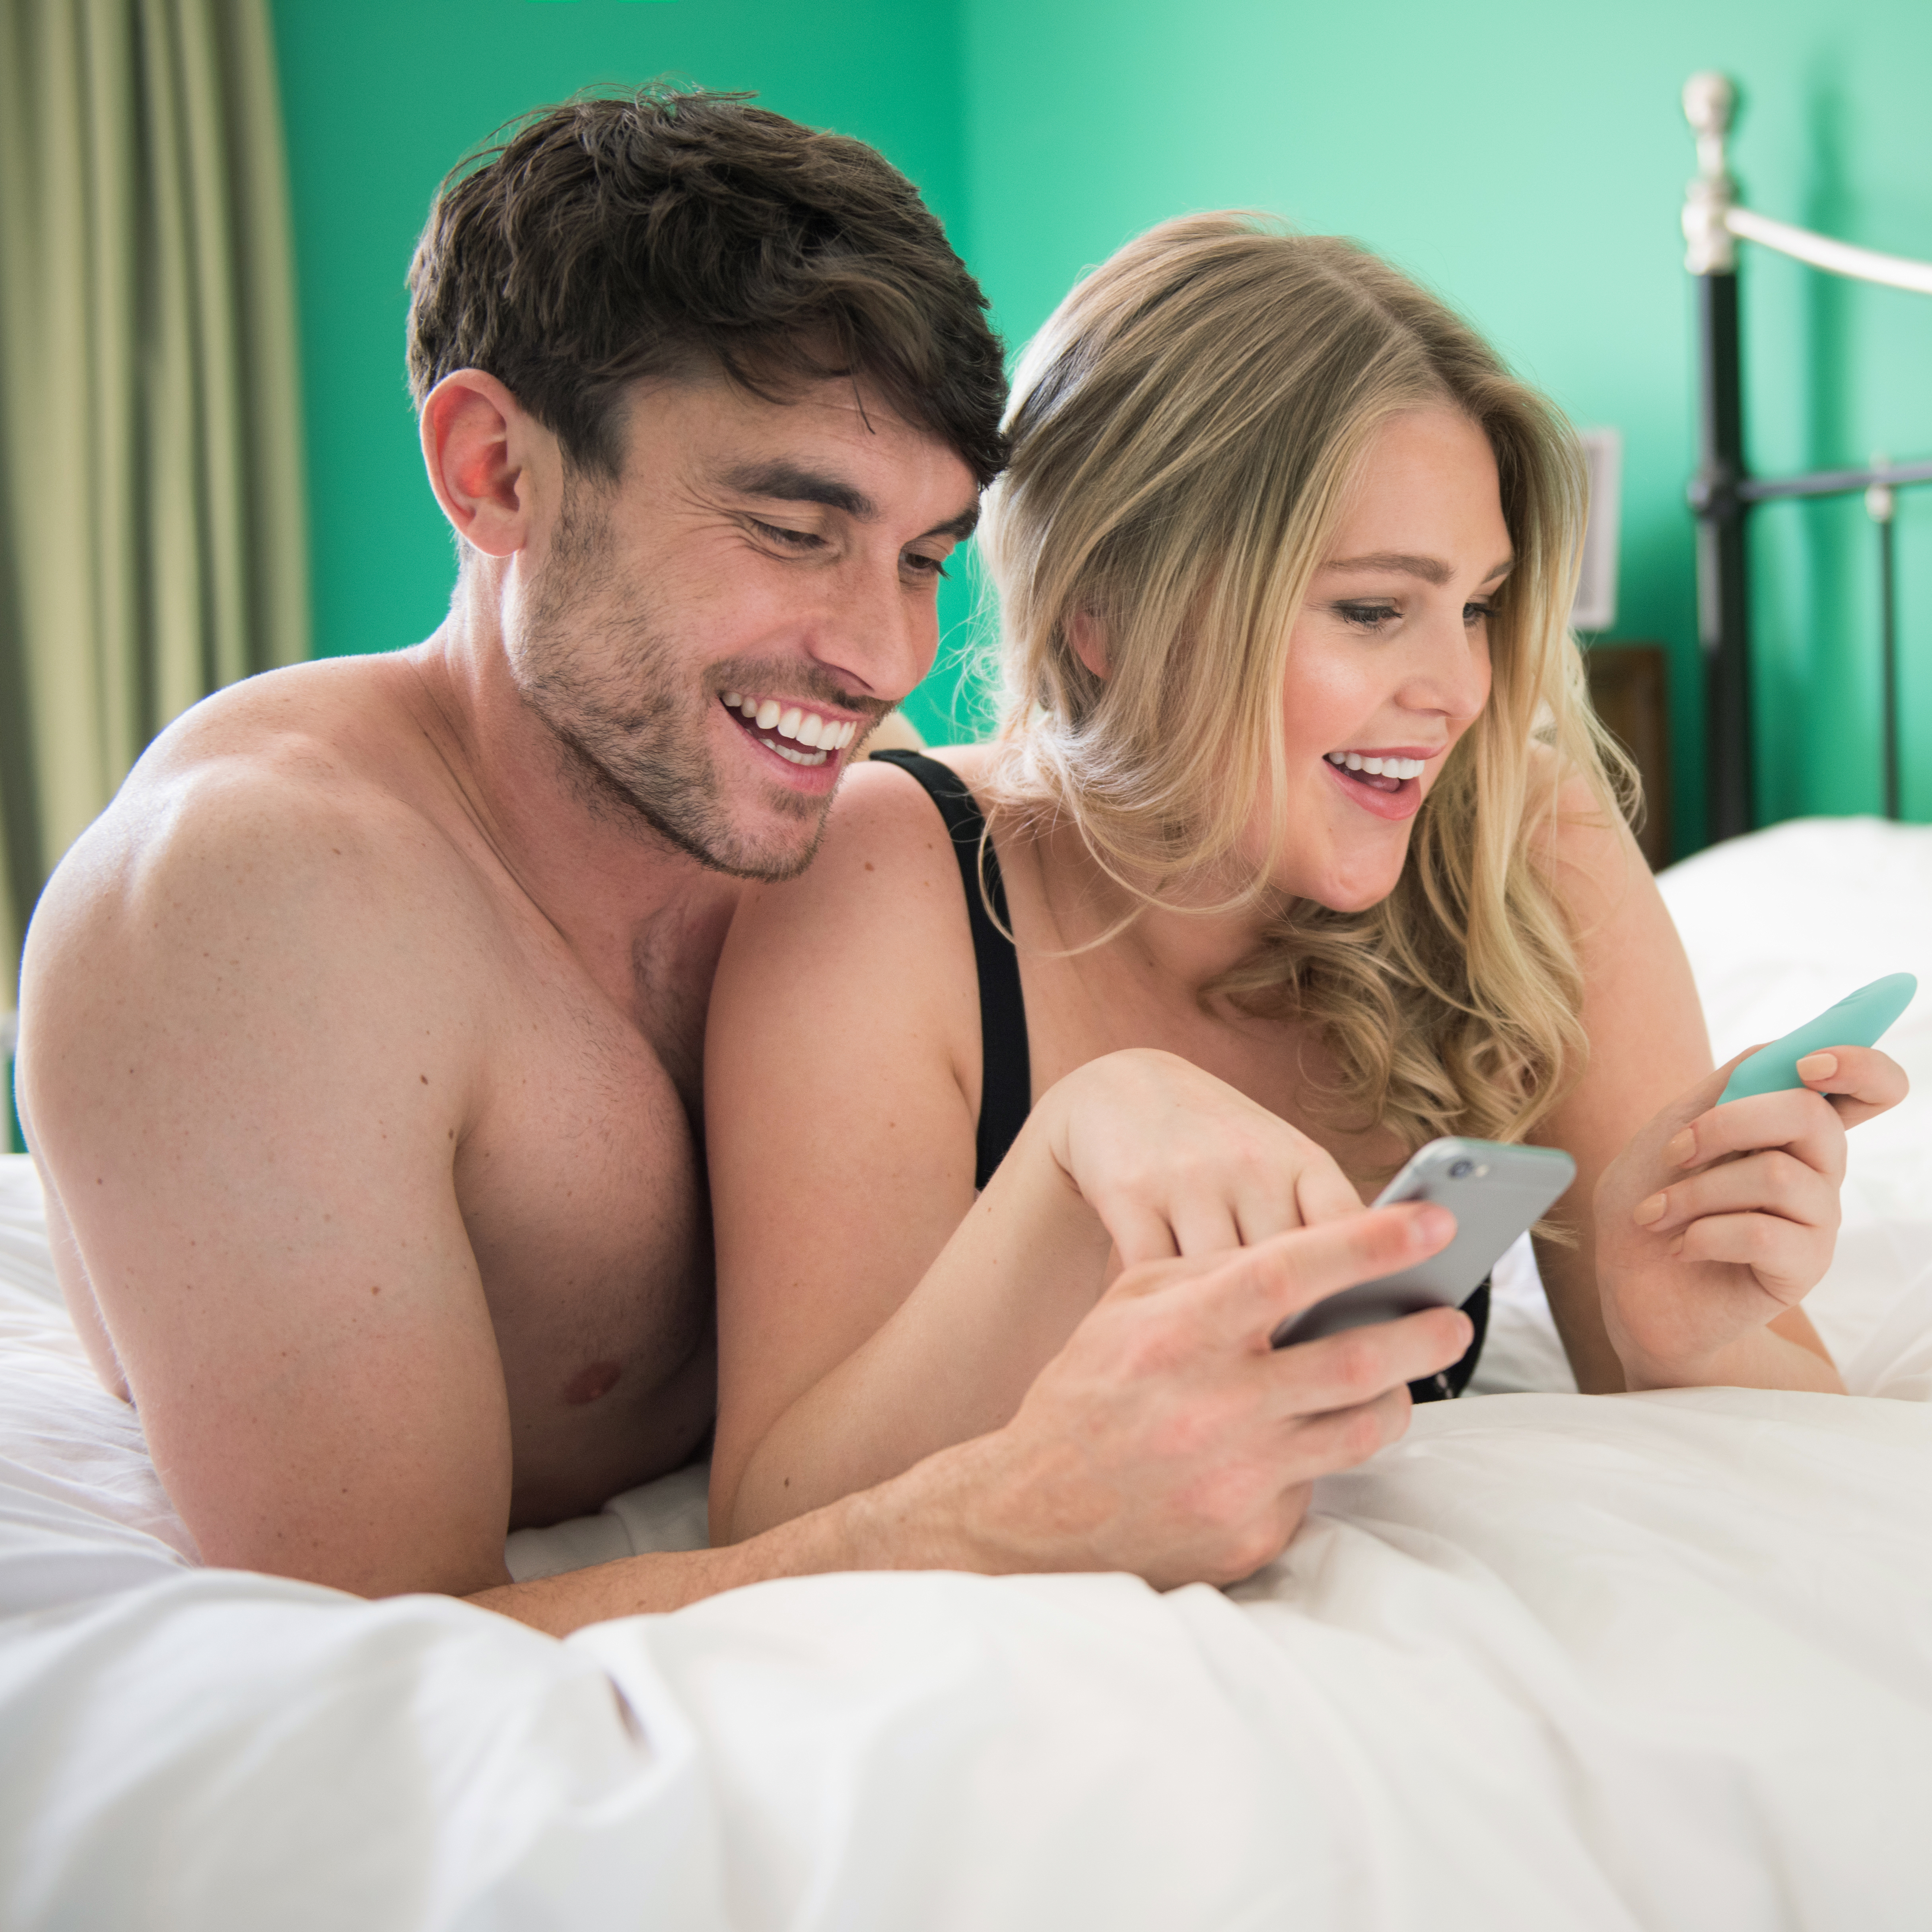 How High-Tech Toys Can Improve Your Sex Life